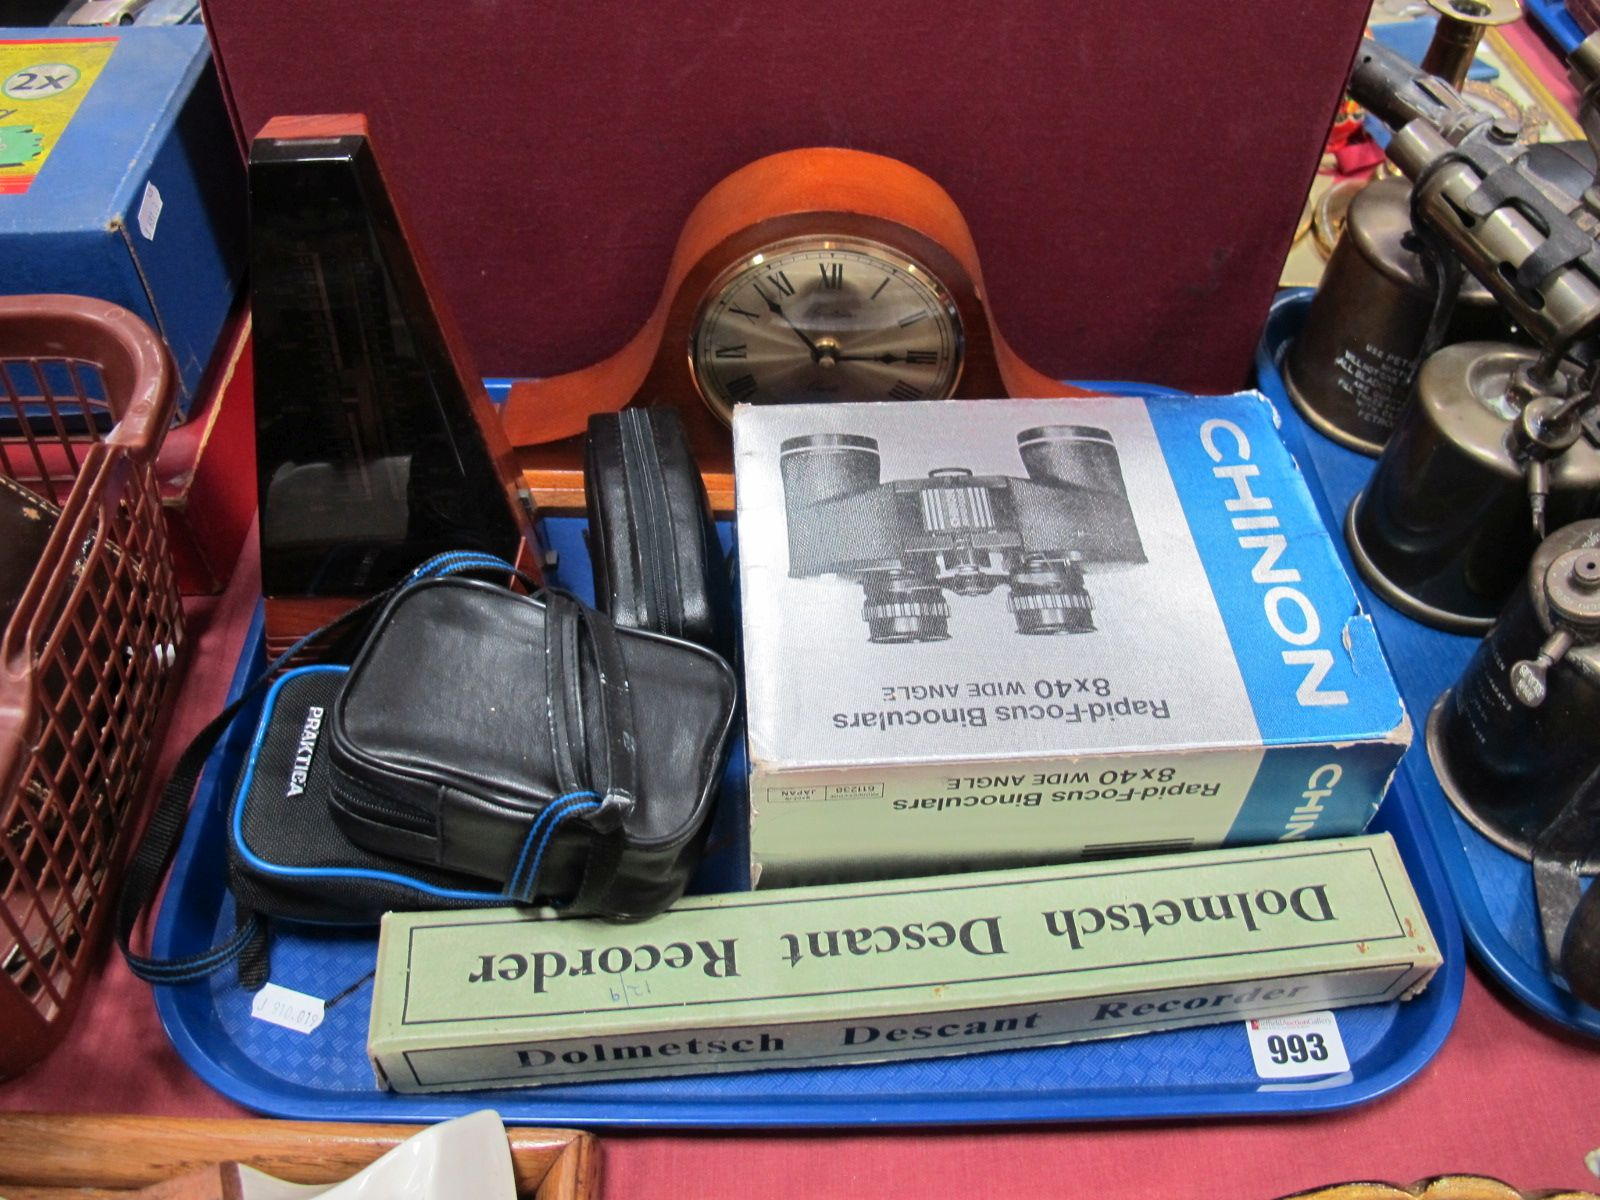 Lot 993 - Chinon 8 x 40 Binoculars, metronome, Dolmetsch recorder, cameras, etc:- One Tray